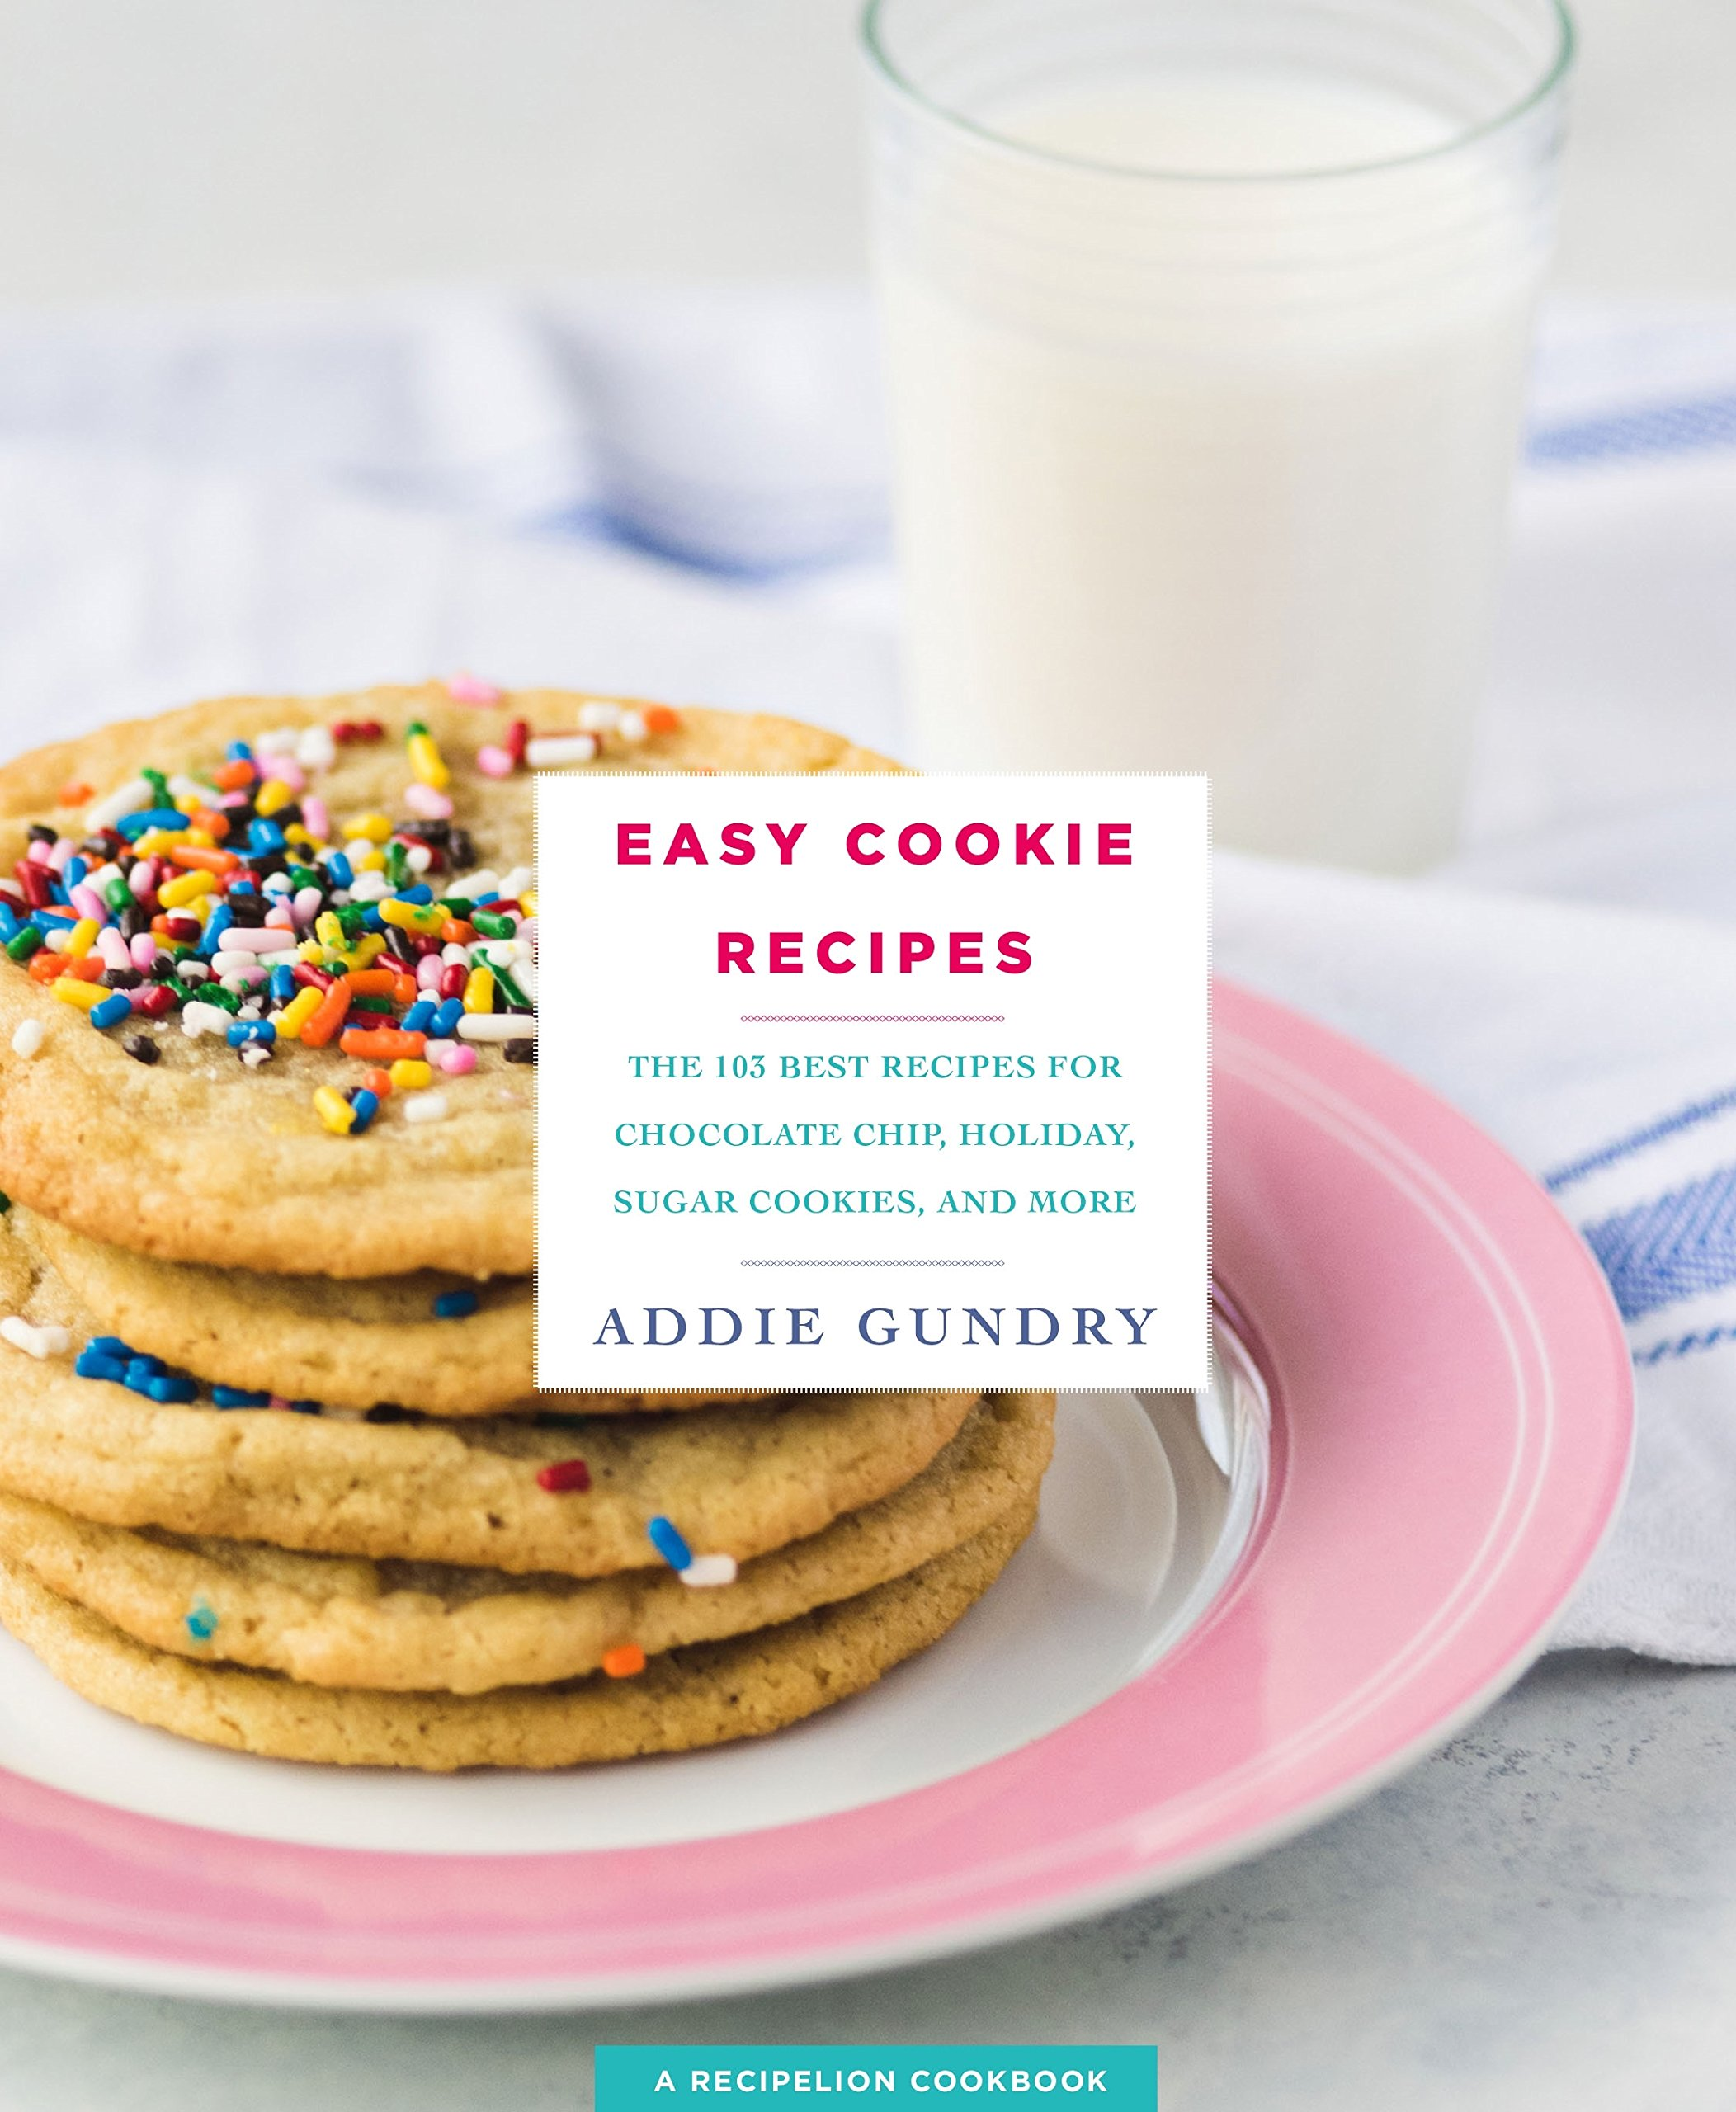 Easy Cookie Recipes: 103 Best Recipes for Chocolate Chip Cookies ...